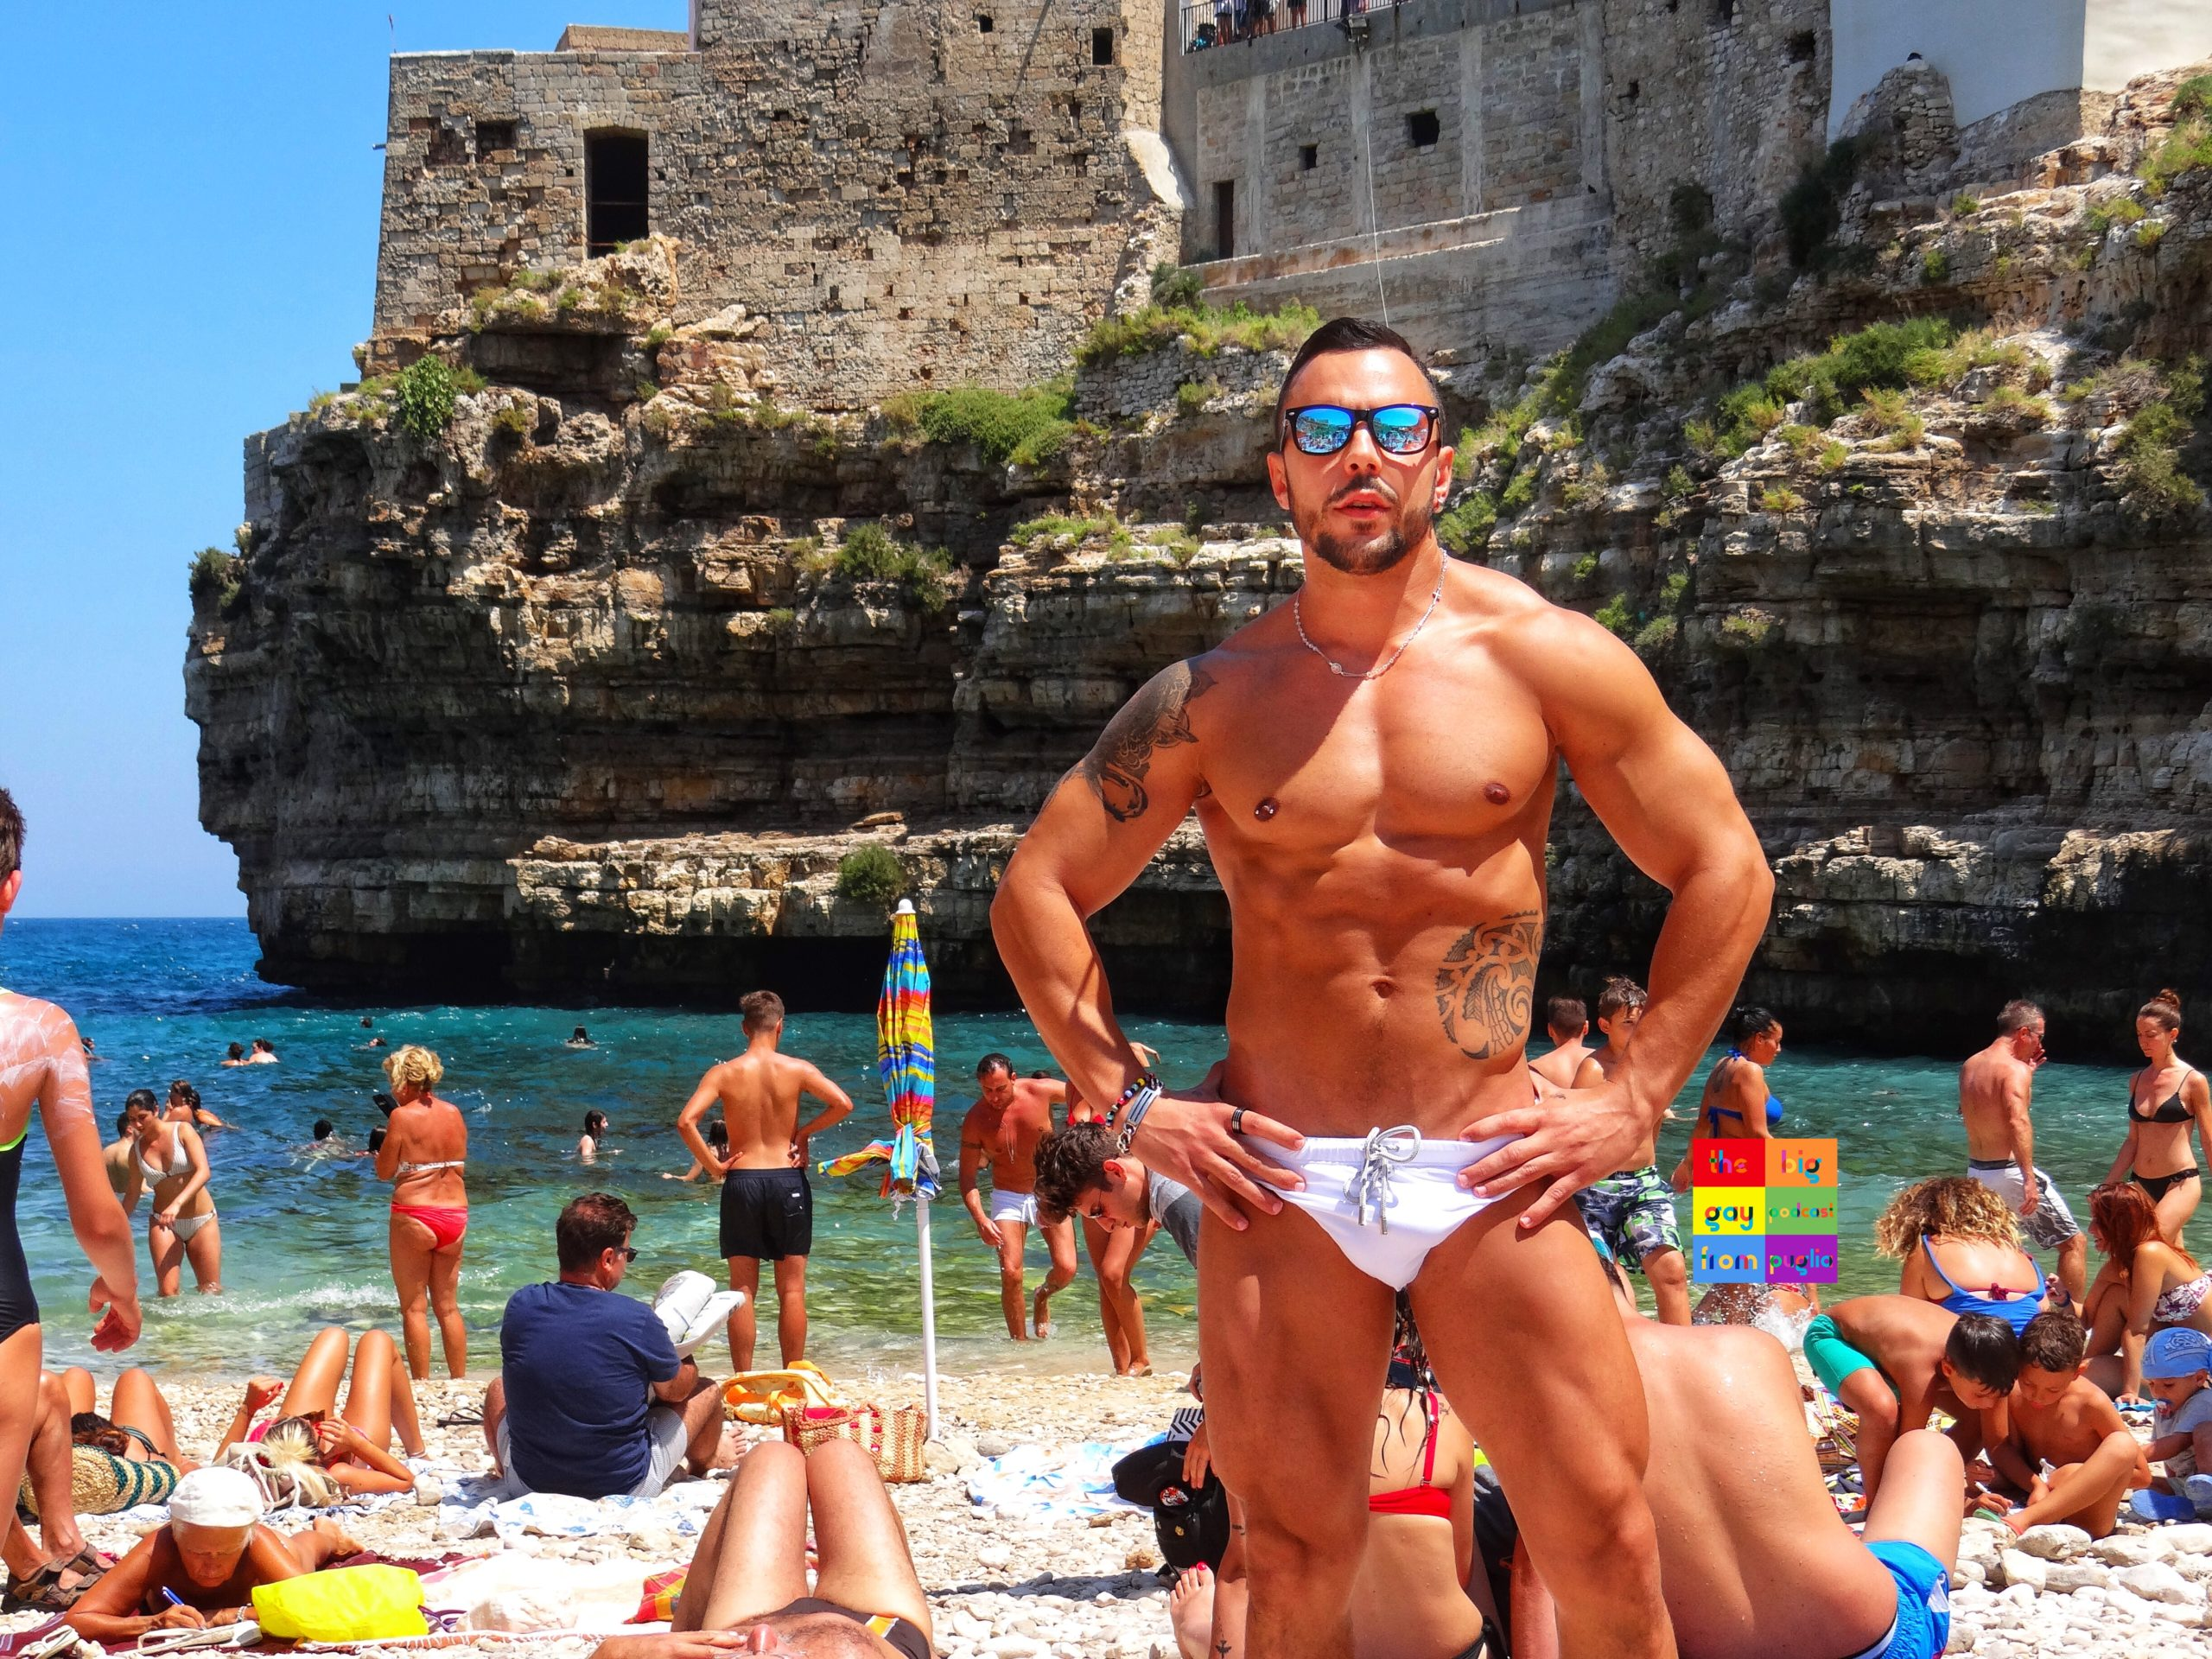 Hot Italian guys are proud to show off their well defined bodies on Puglia's beaches. The Big Gay Podcast from Puglia - the definitive guide to gay Puglia